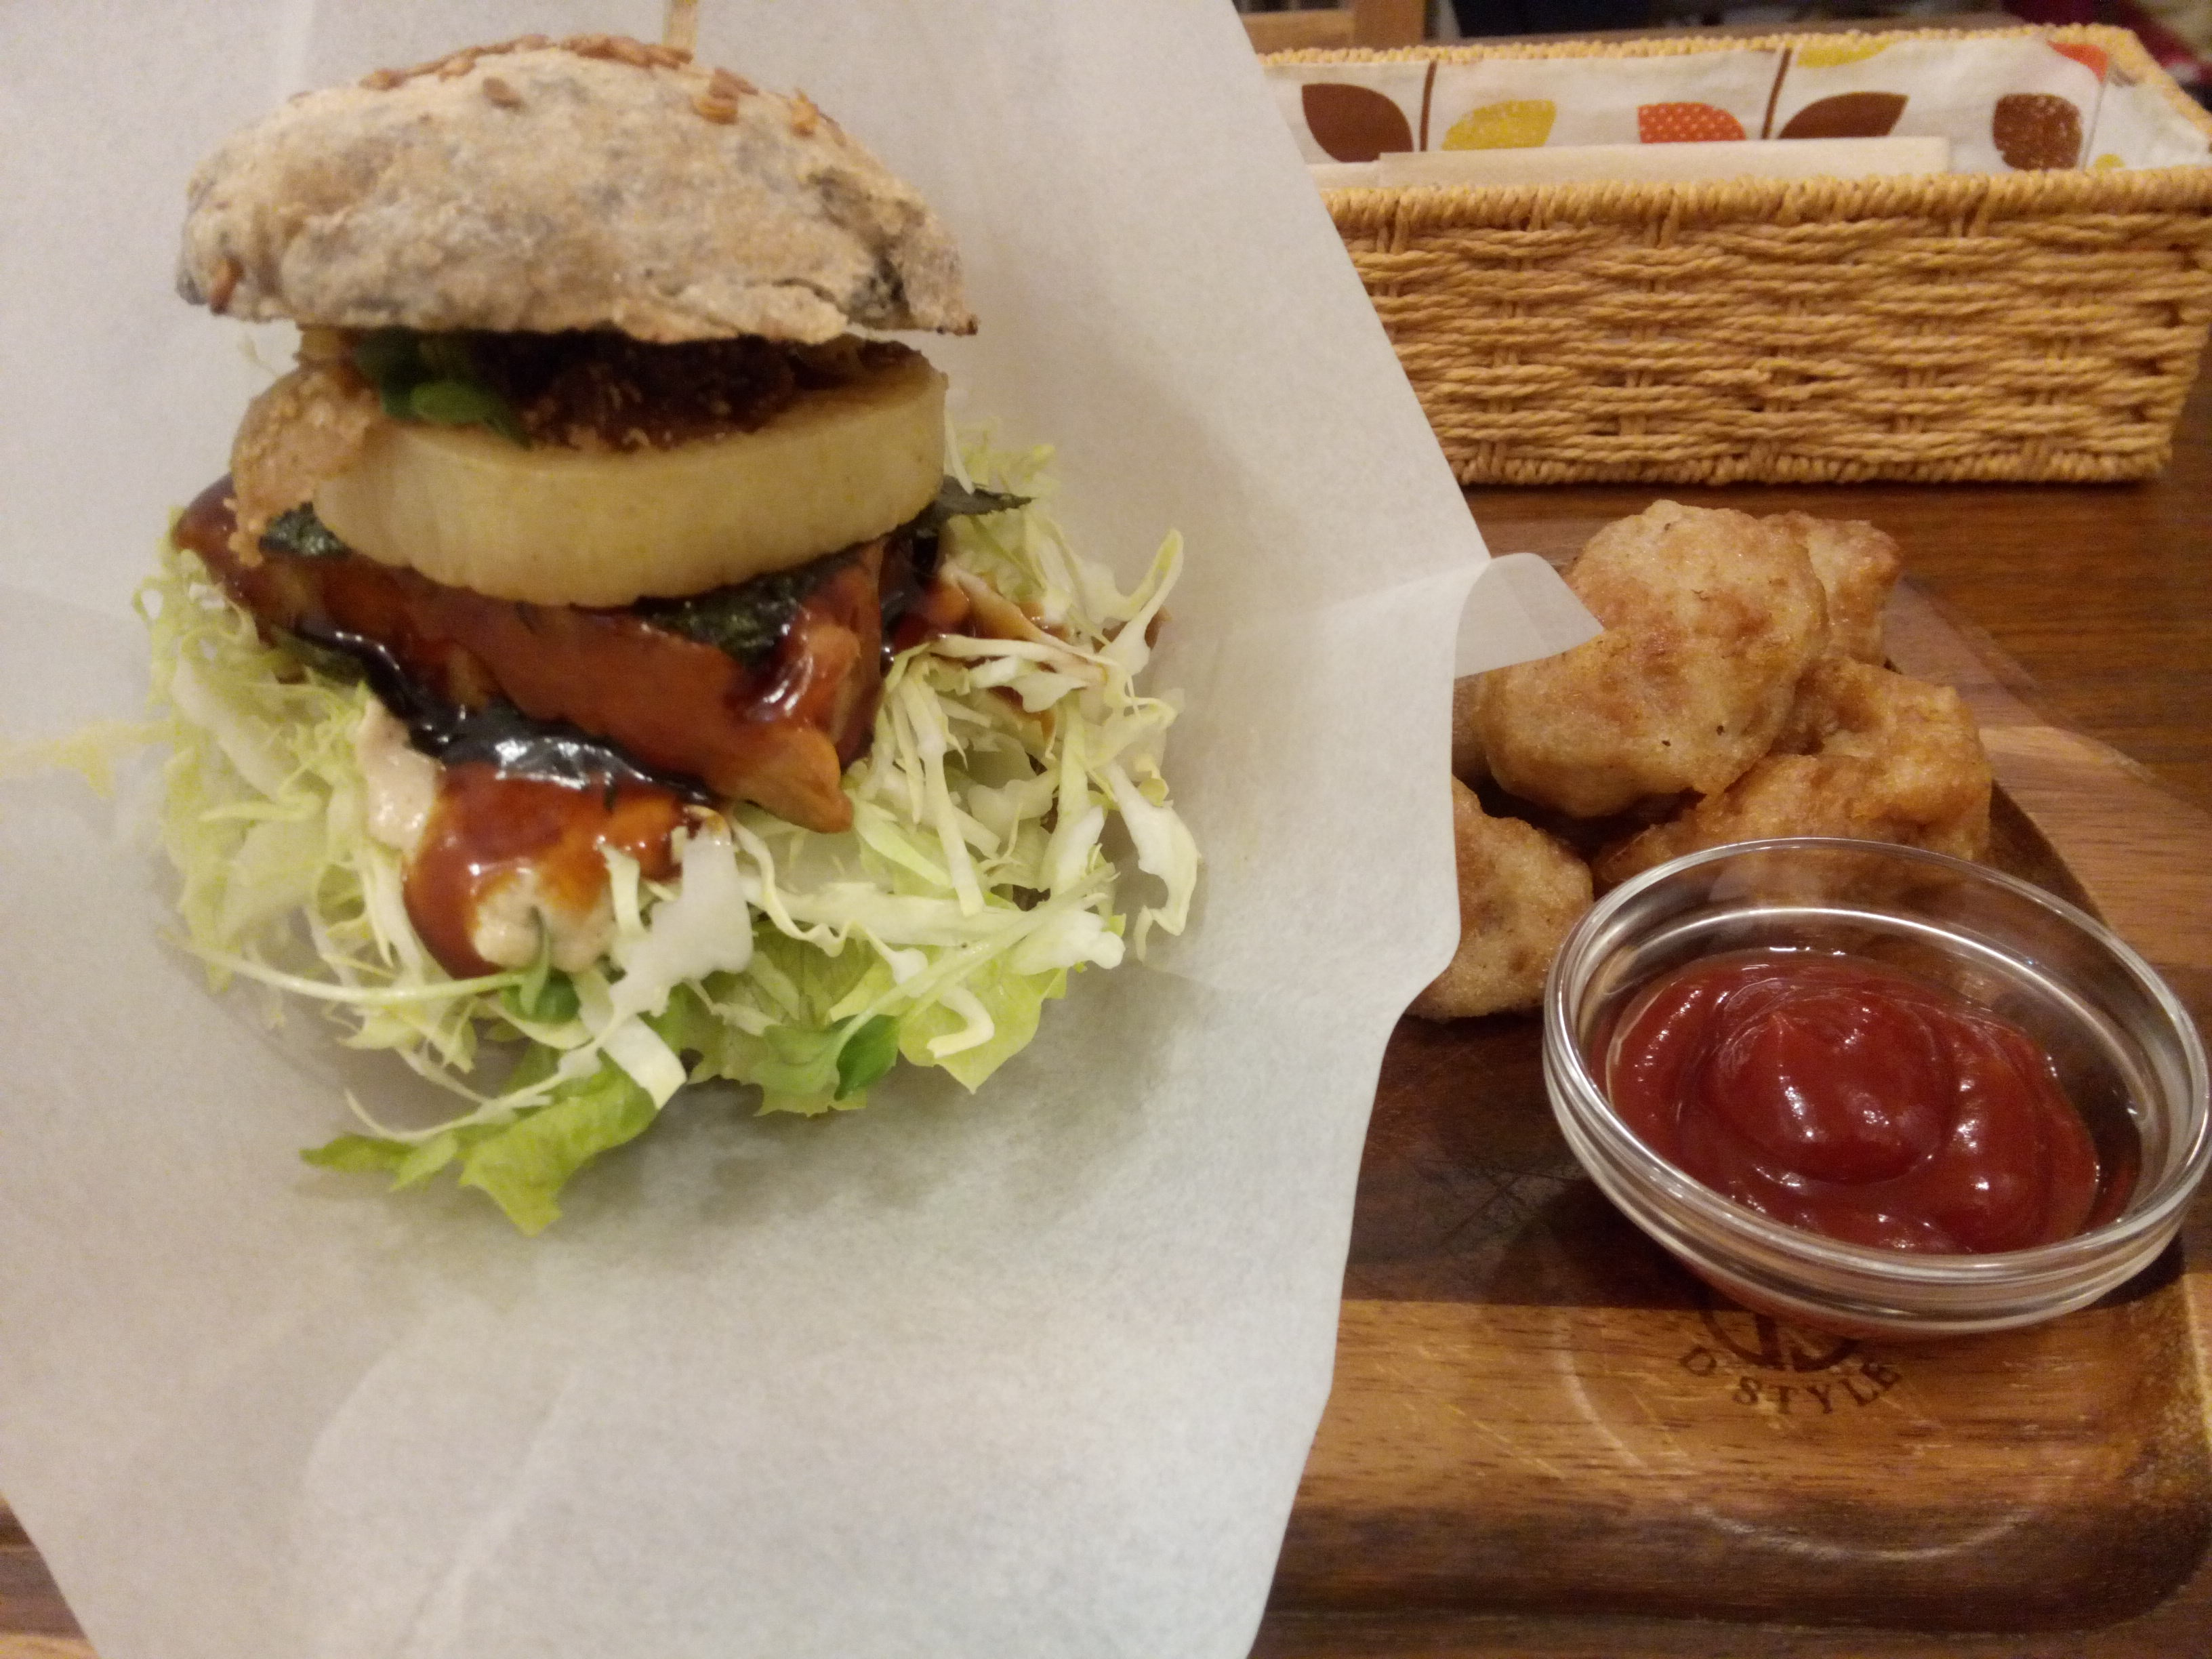 Teriyaki burger with fried soy meat